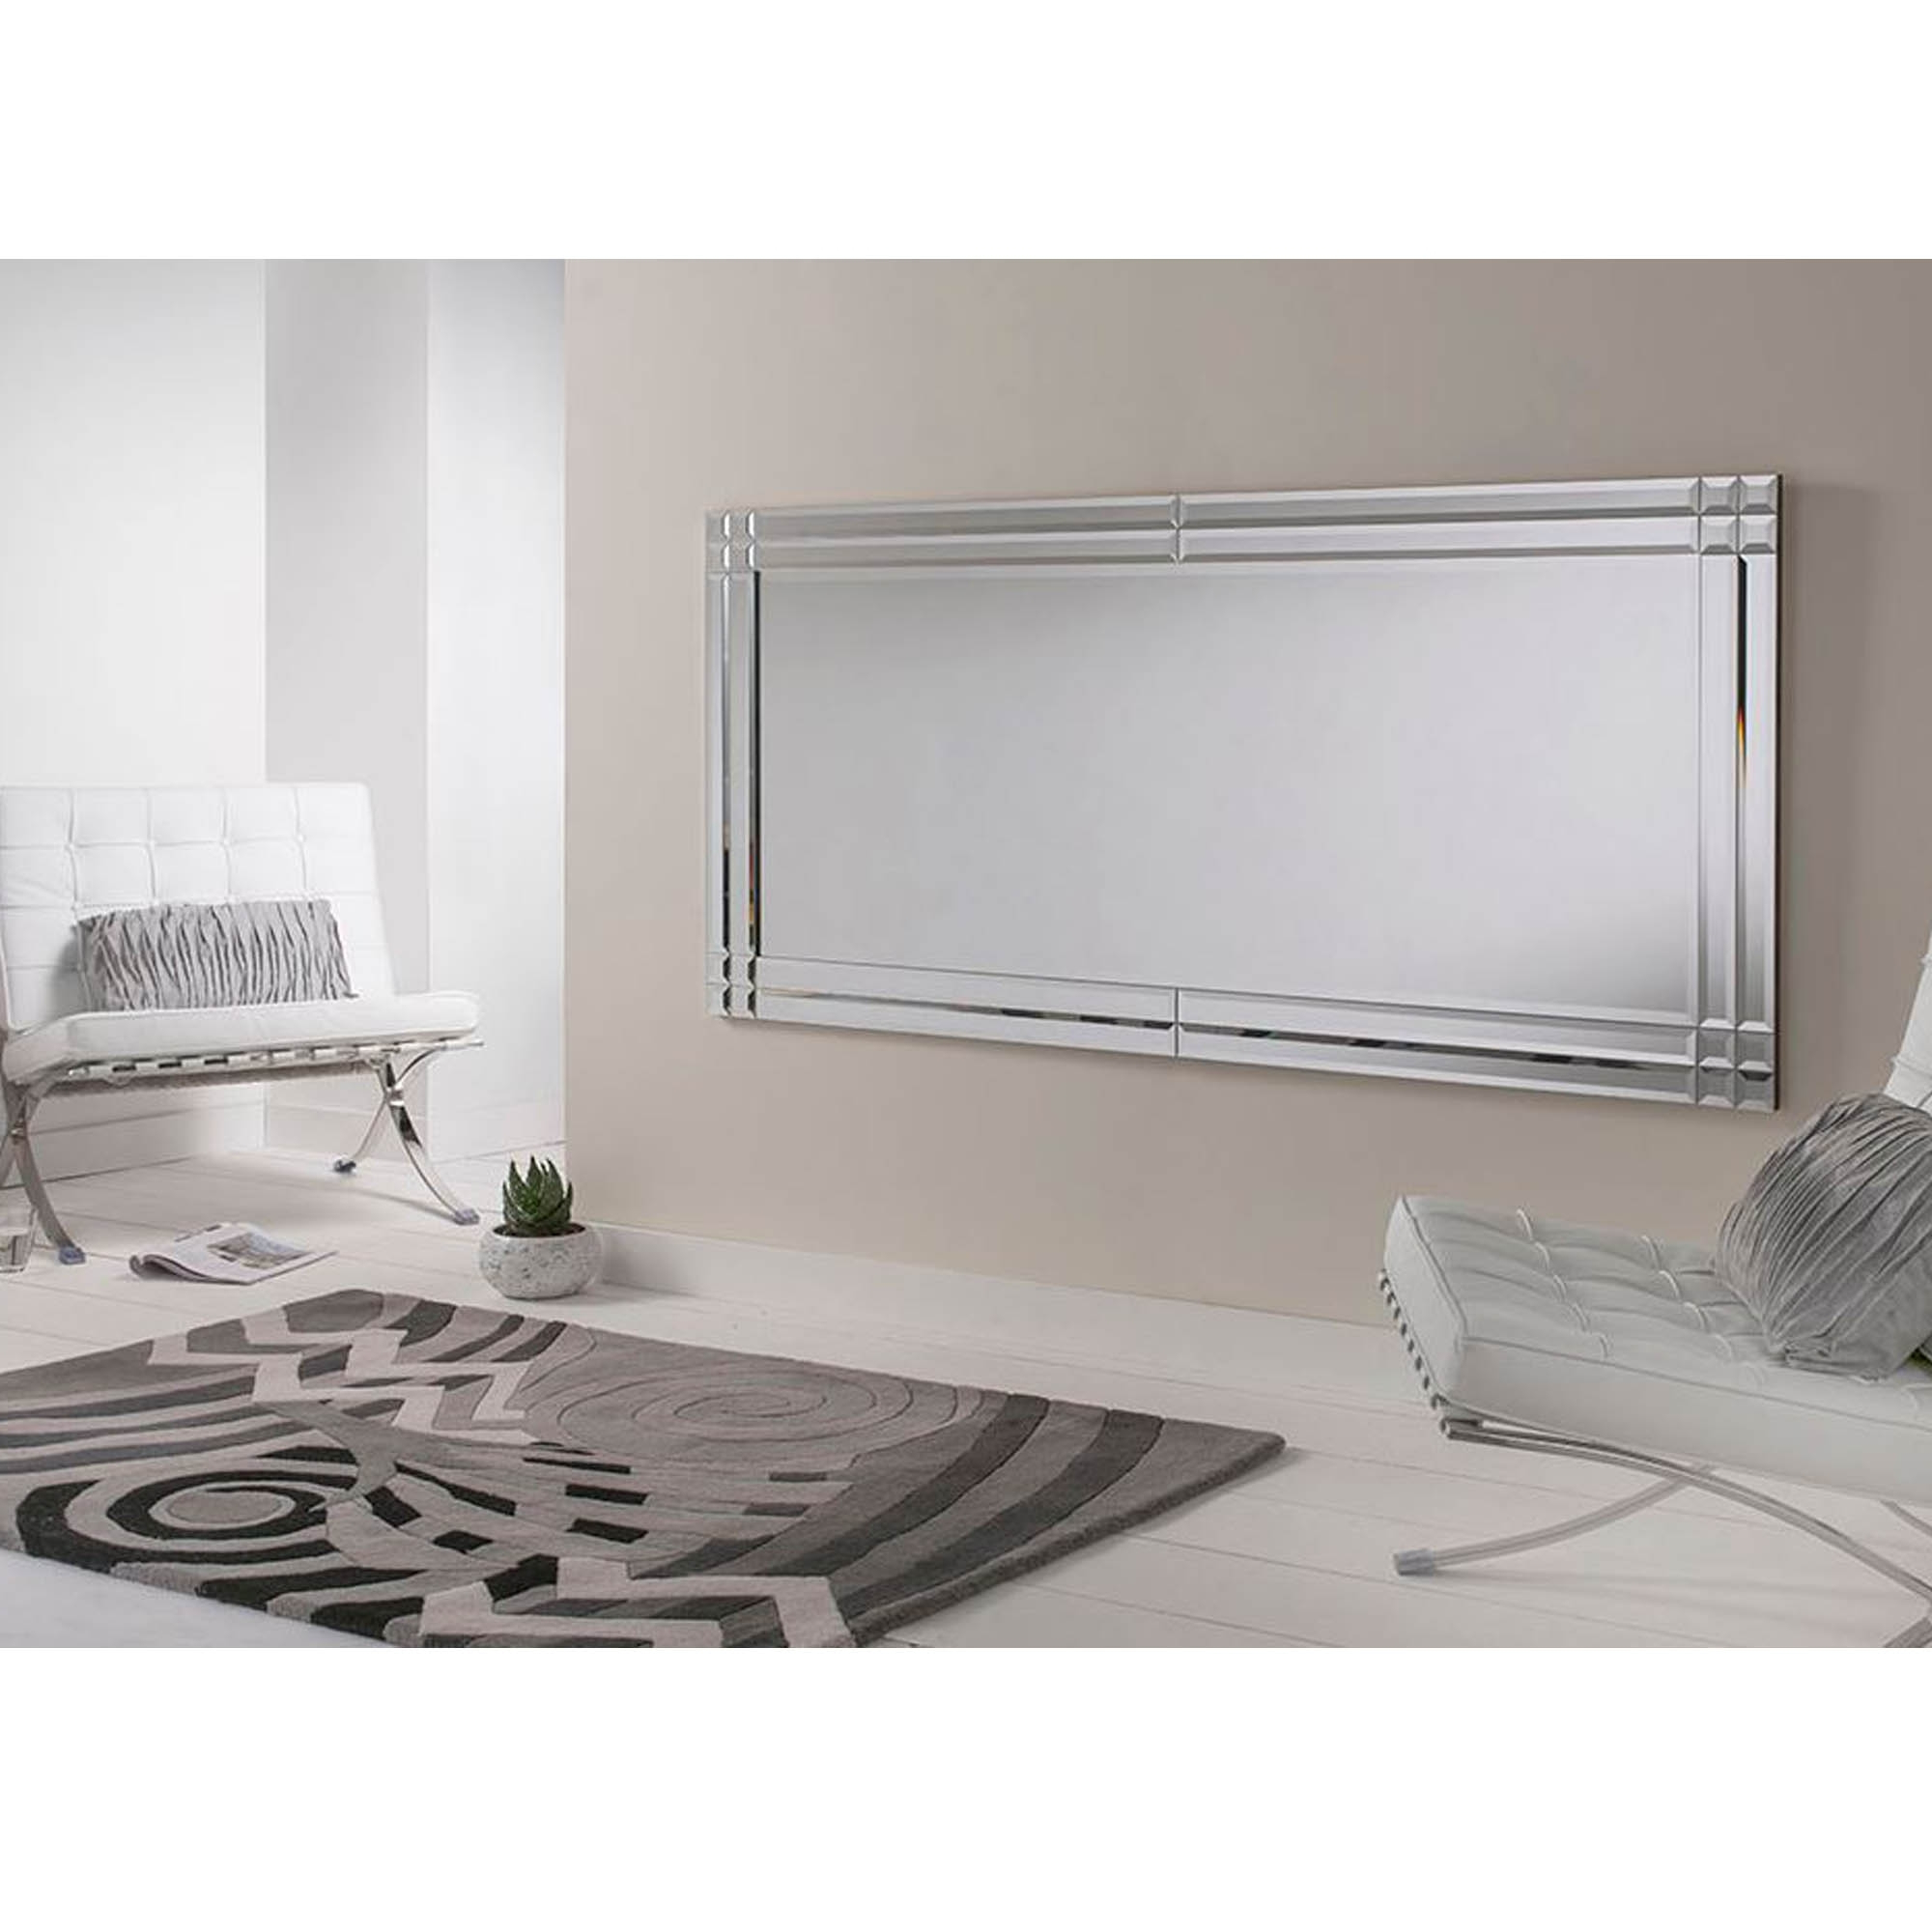 Large Bevelled Rectangular Wall Mirror Intended For Latest Long Wall Mirrors (View 7 of 20)